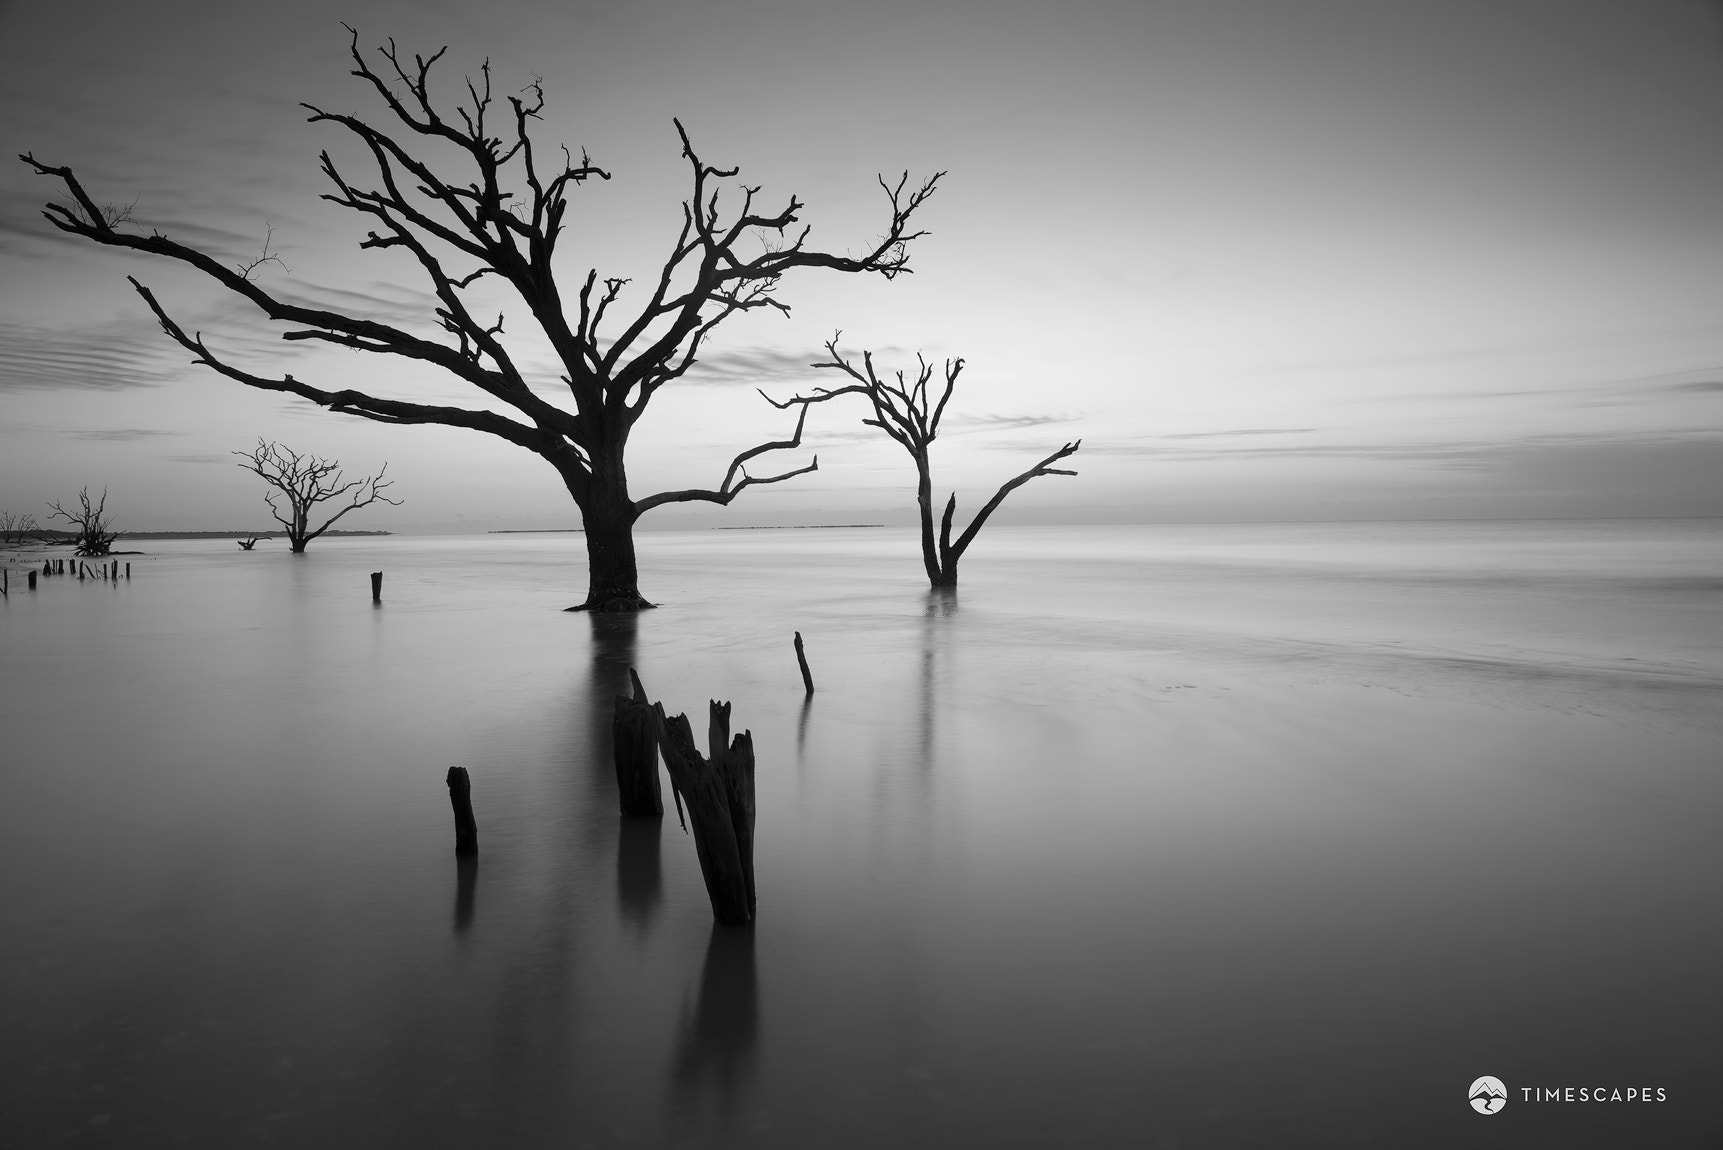 Photograph The Sound of Silence by Bernard Chen on 500px